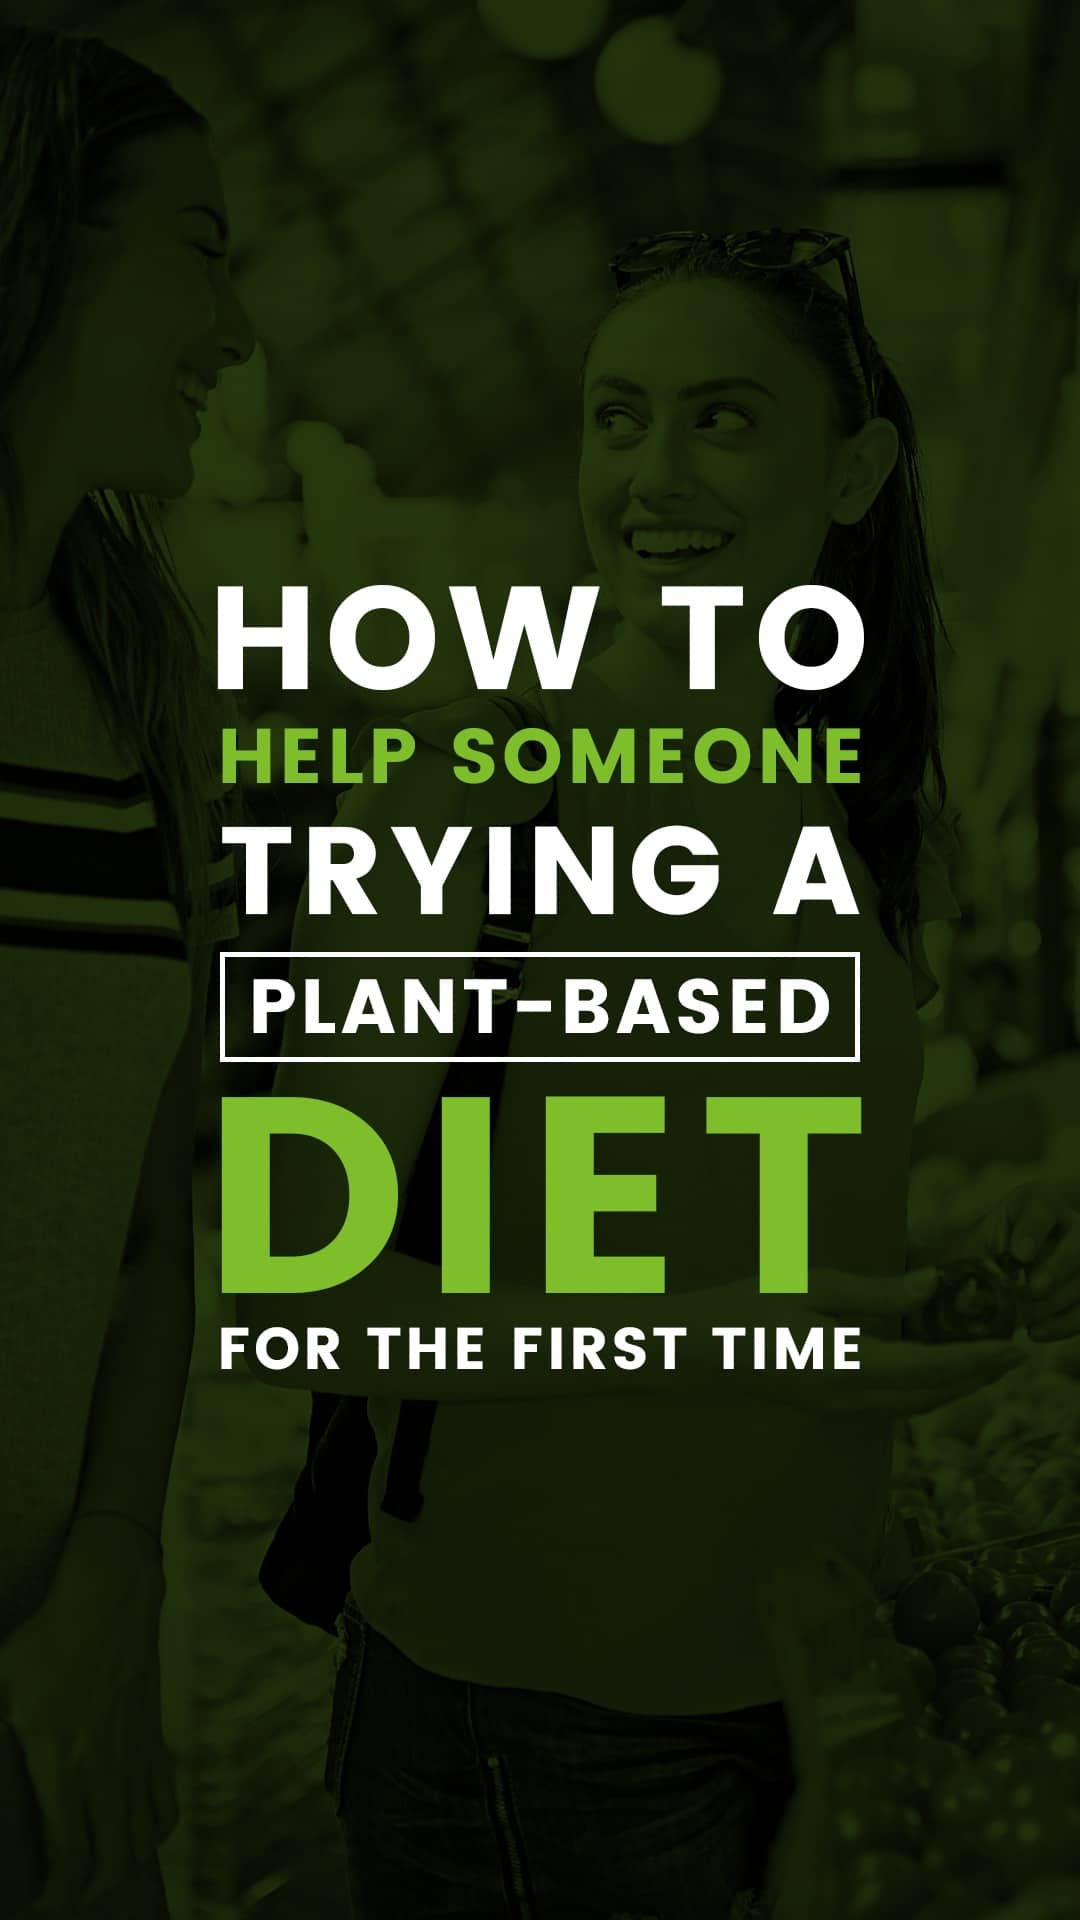 How to Help Someone Trying a Plant-Based Diet for the First Time